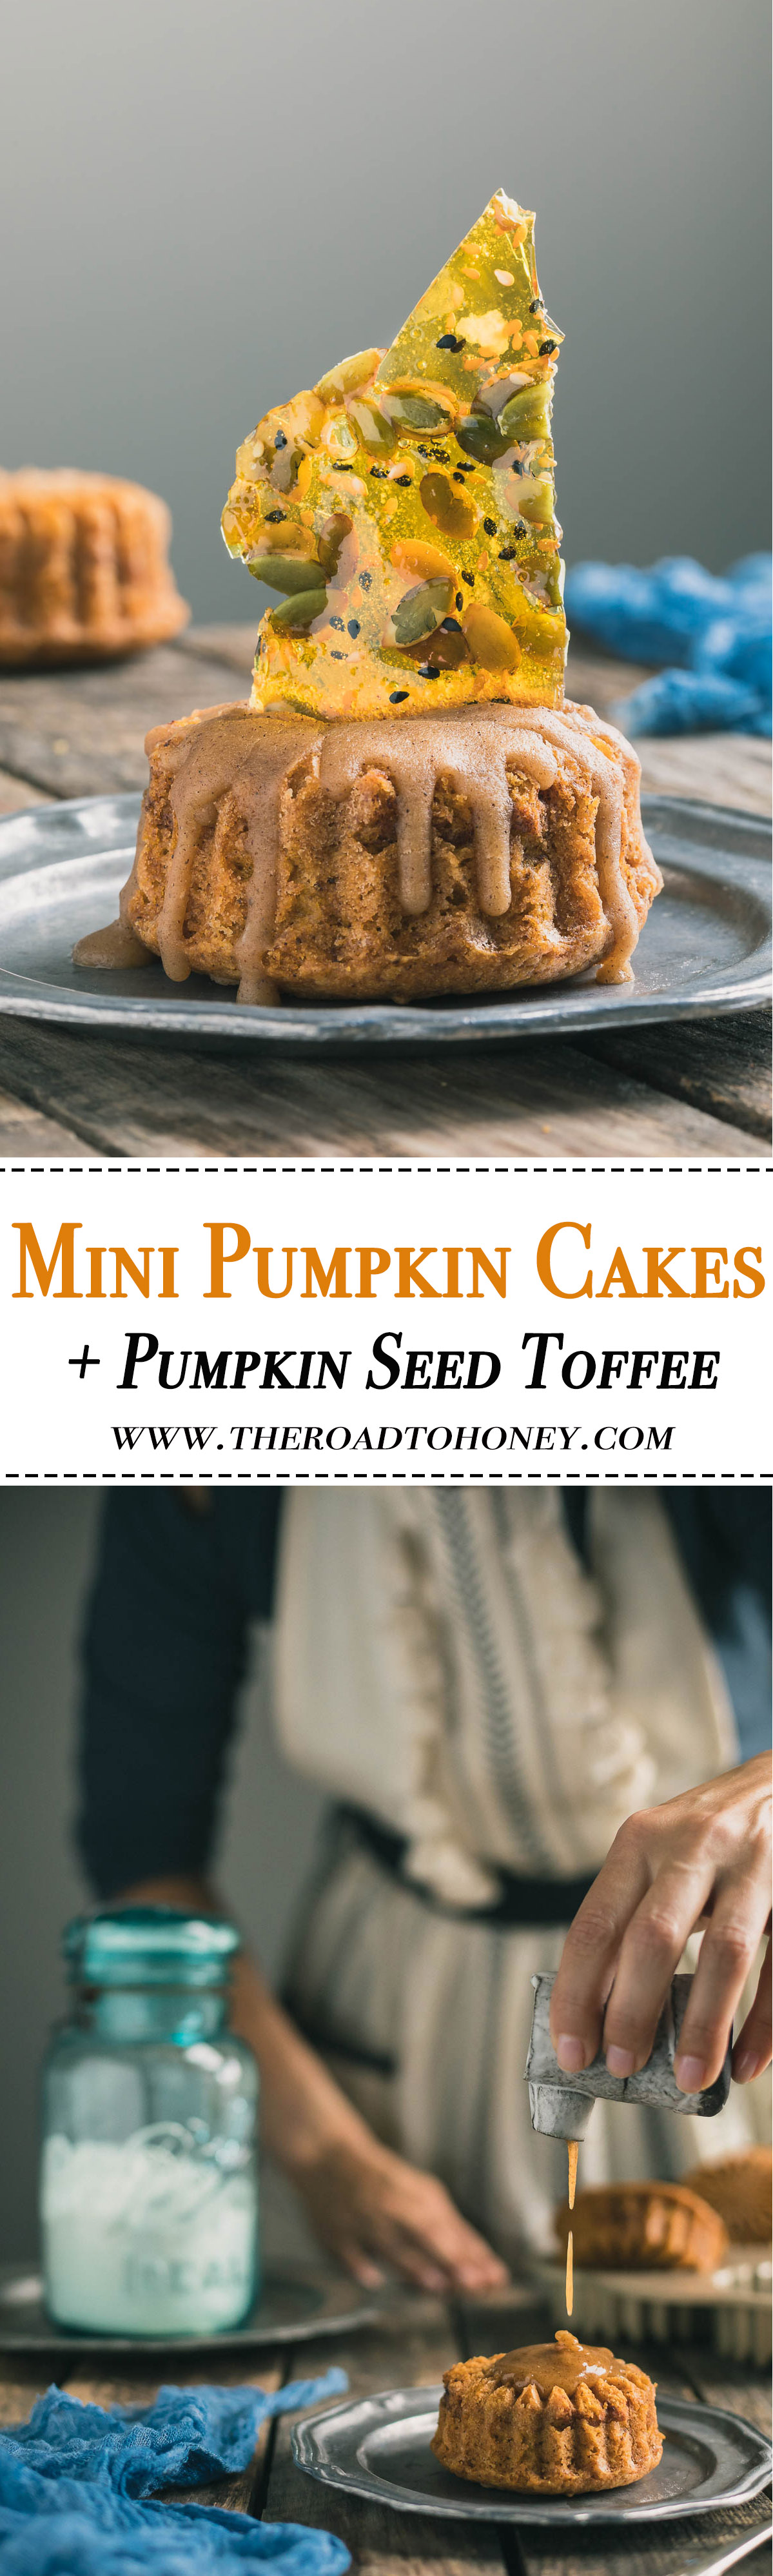 Mini Pumpkin Cakes with Brown Butter Maple Glaze - Moist and fluffy mini pumpkin cakes are filled with fall spices, then topped with a heavenly brown sugar and maple glaze.  They are then topped with sweet and crunchy pieces of Pumpkin and Sesame Seed Toffee for an elegant look.  A must for any Halloween or Thanksgiving gathering.